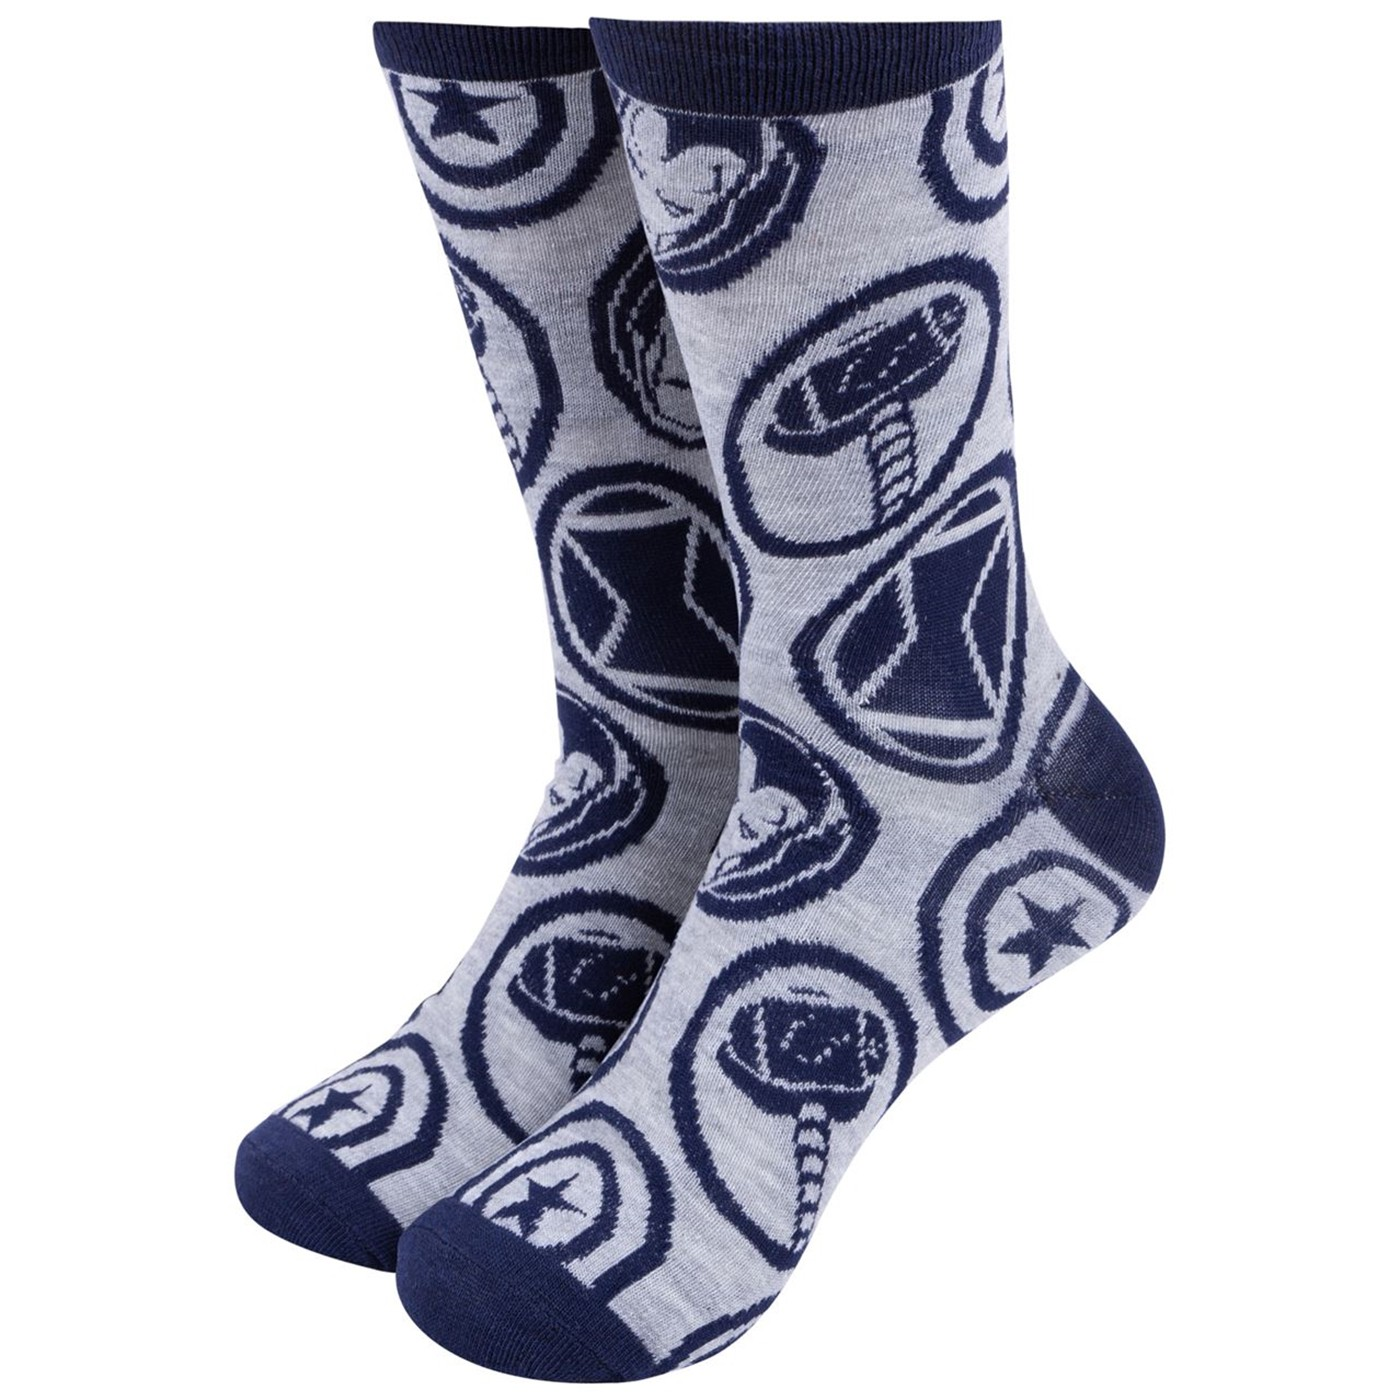 Captain America Symbol and Avengers Symbols Crew Socks Two Pack